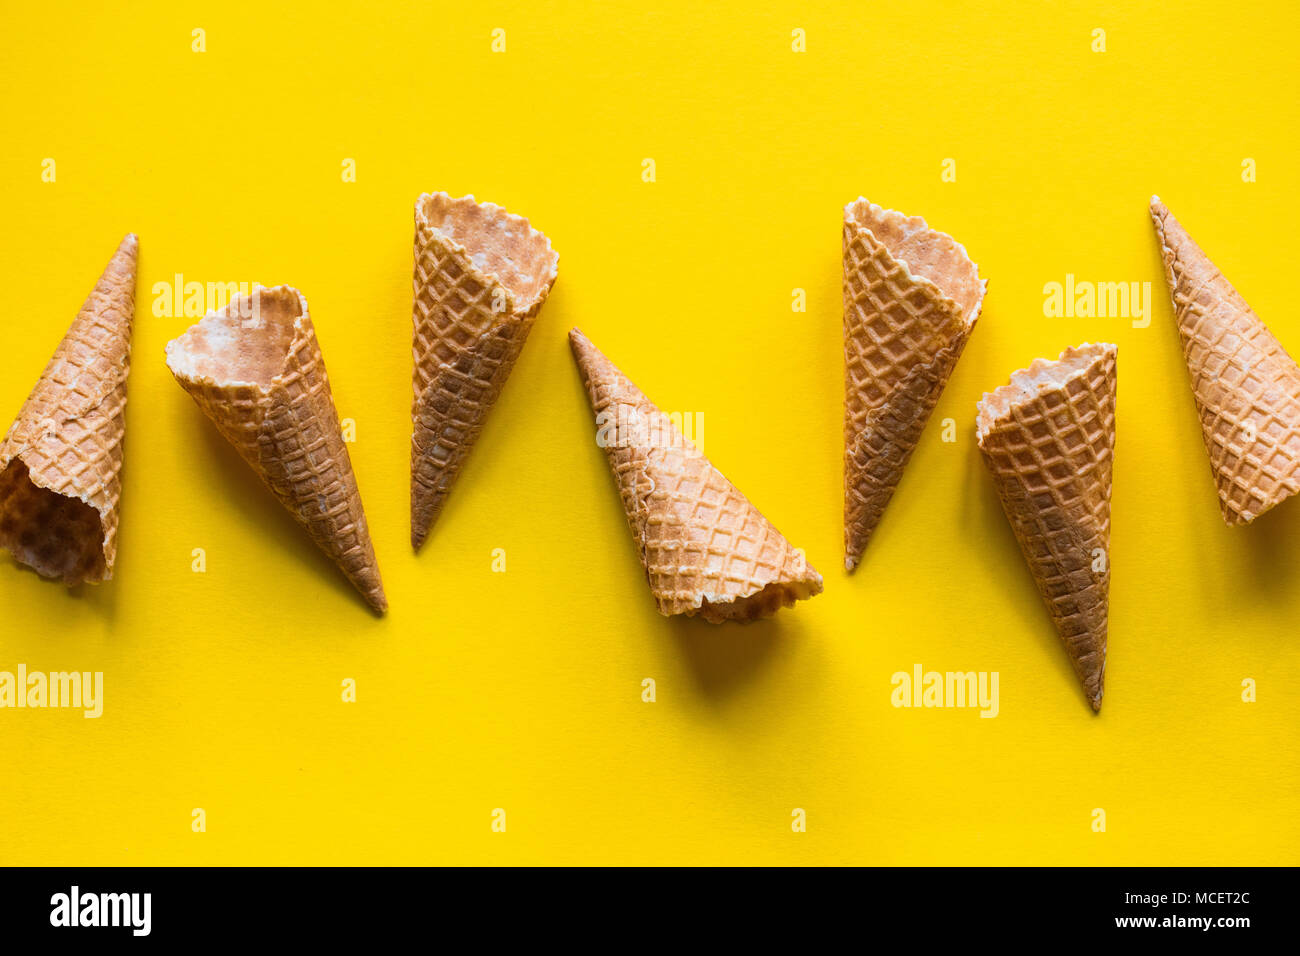 Empty waffle wafer ice cream cone on a bright yellow background - Stock Image